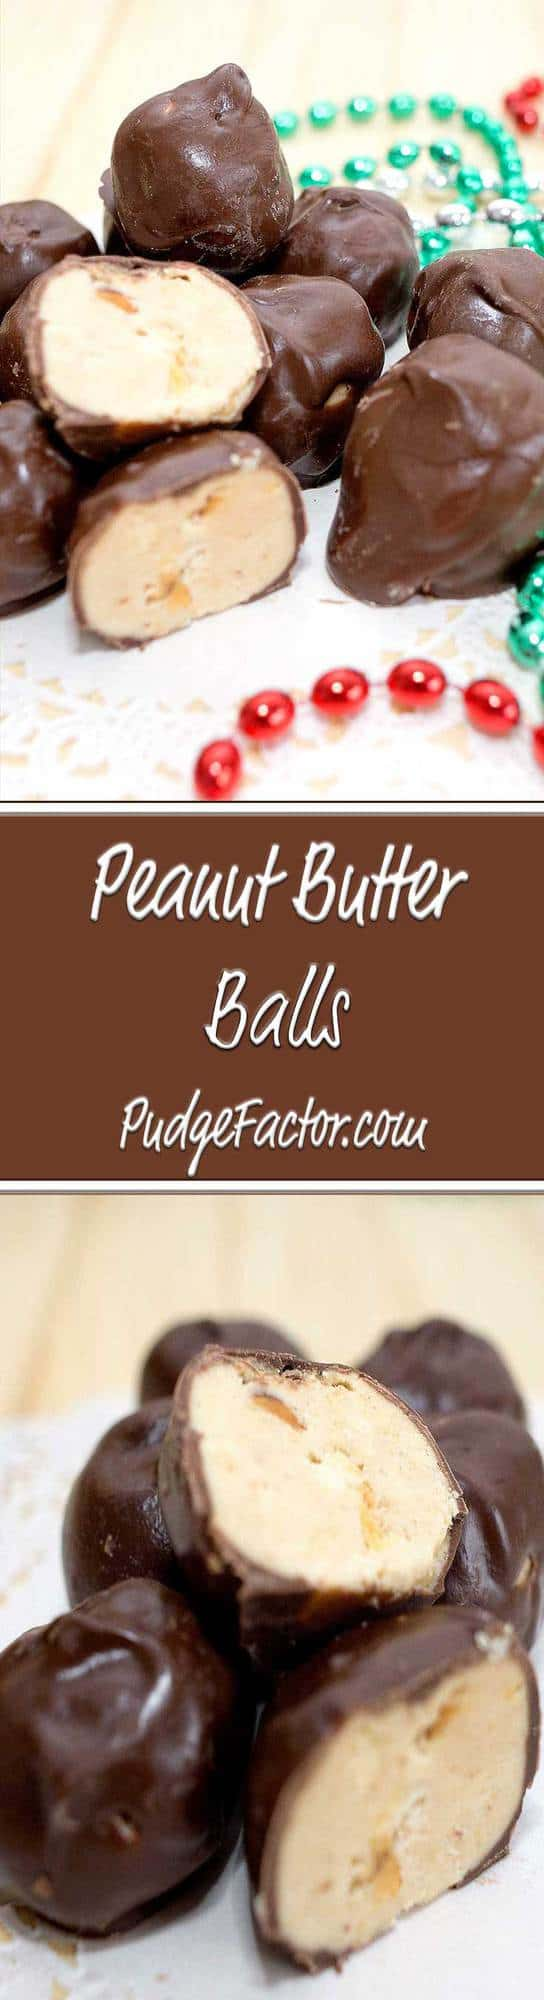 Peanut butter balls are the ultimate peanut butter and chocolate treat, and a perfect candy to make for the holidays!